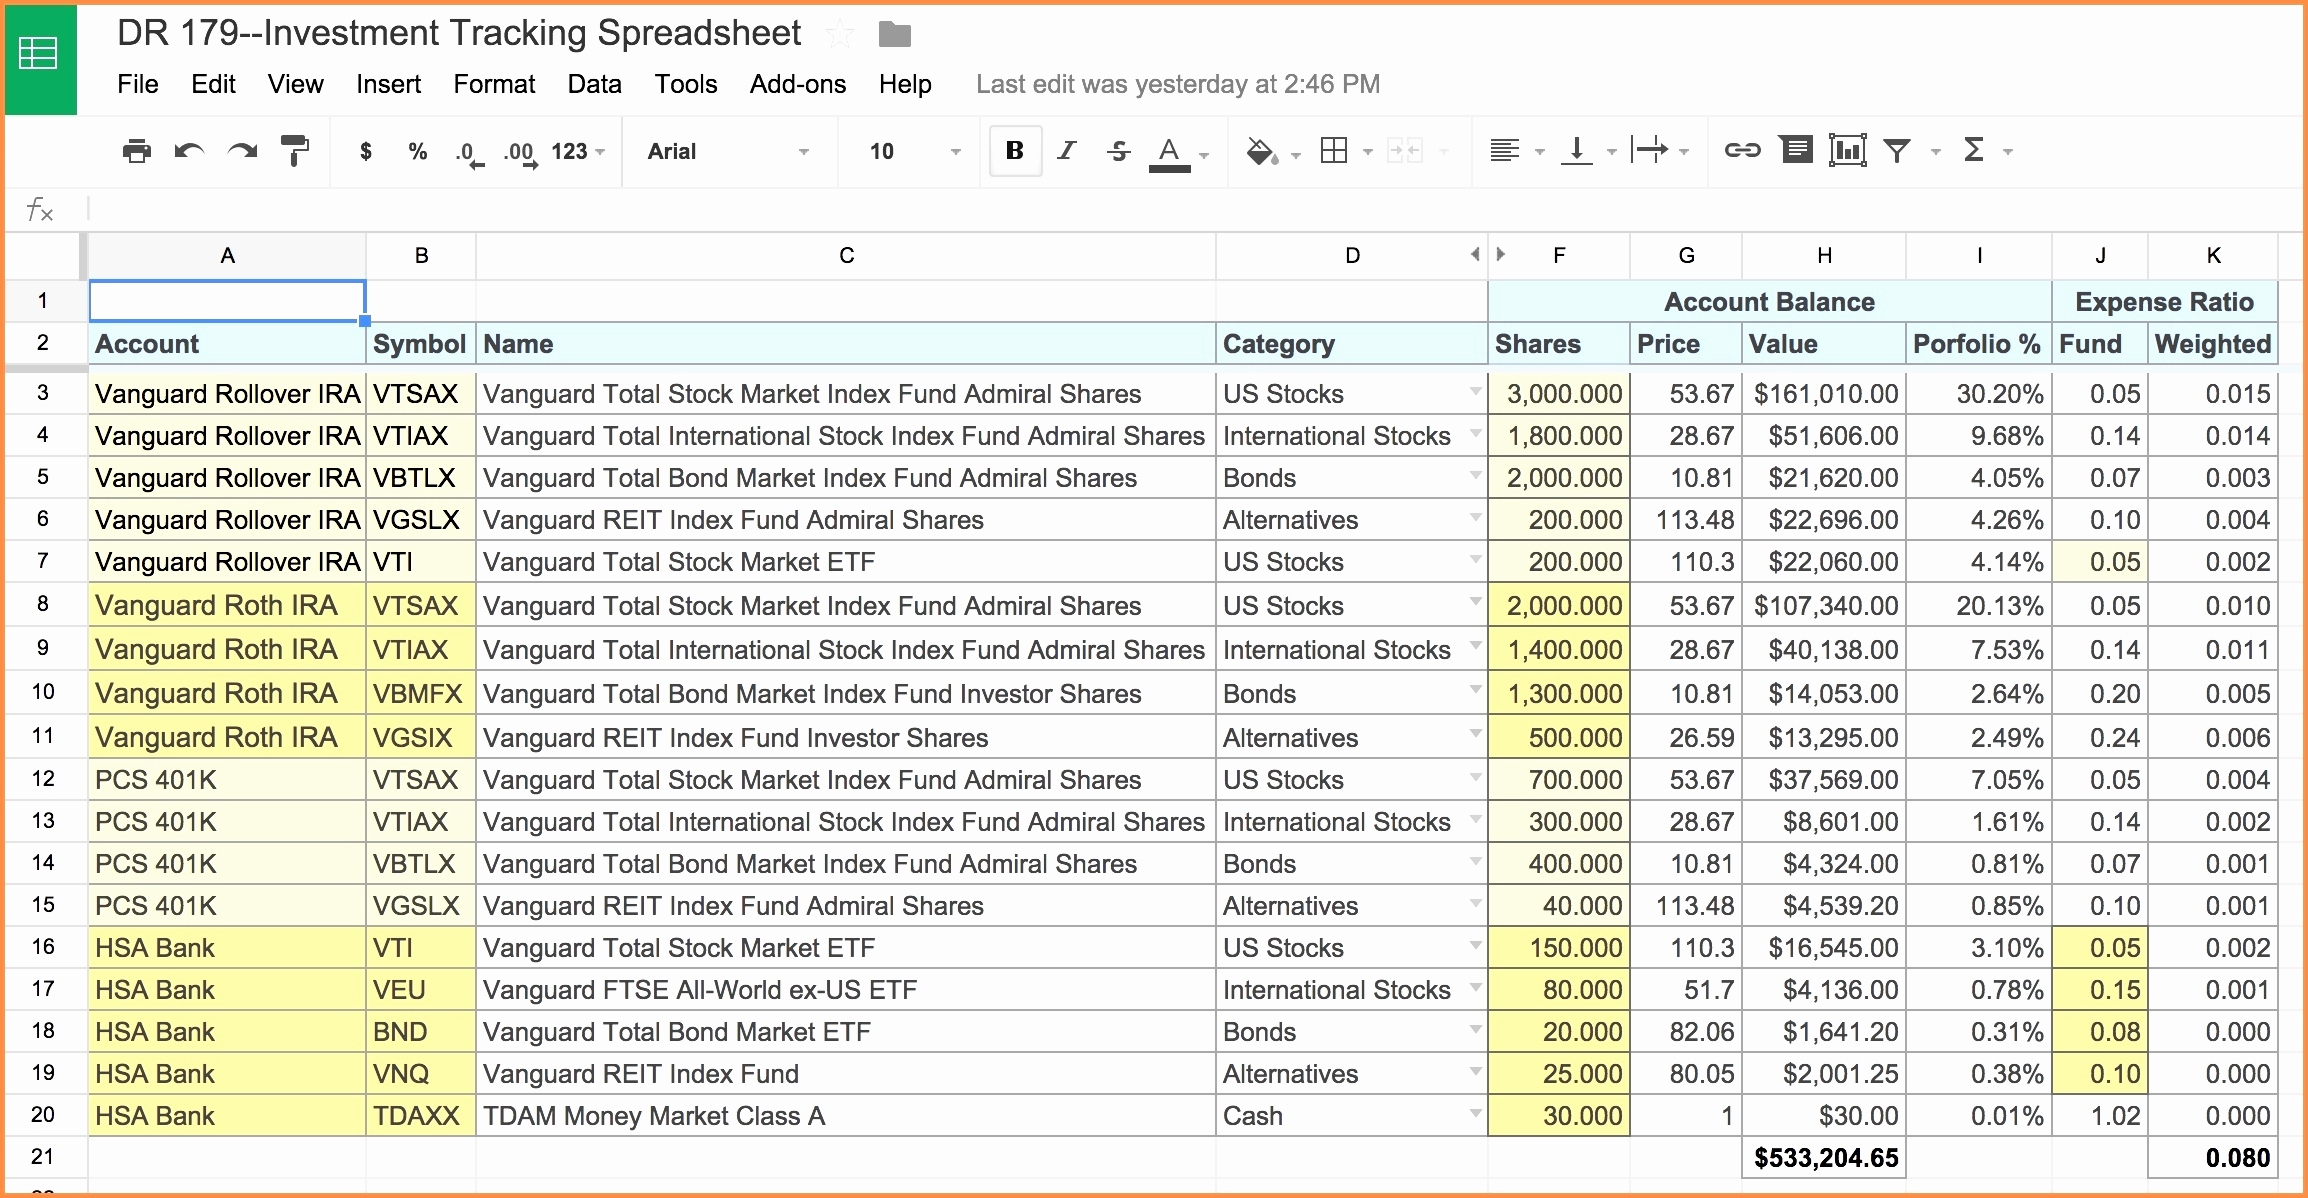 Real Estate Agent Expenses Spreadsheet Intended For Real Estate Agent Expense Tracking Spreadsheet 13 Expenses Excel